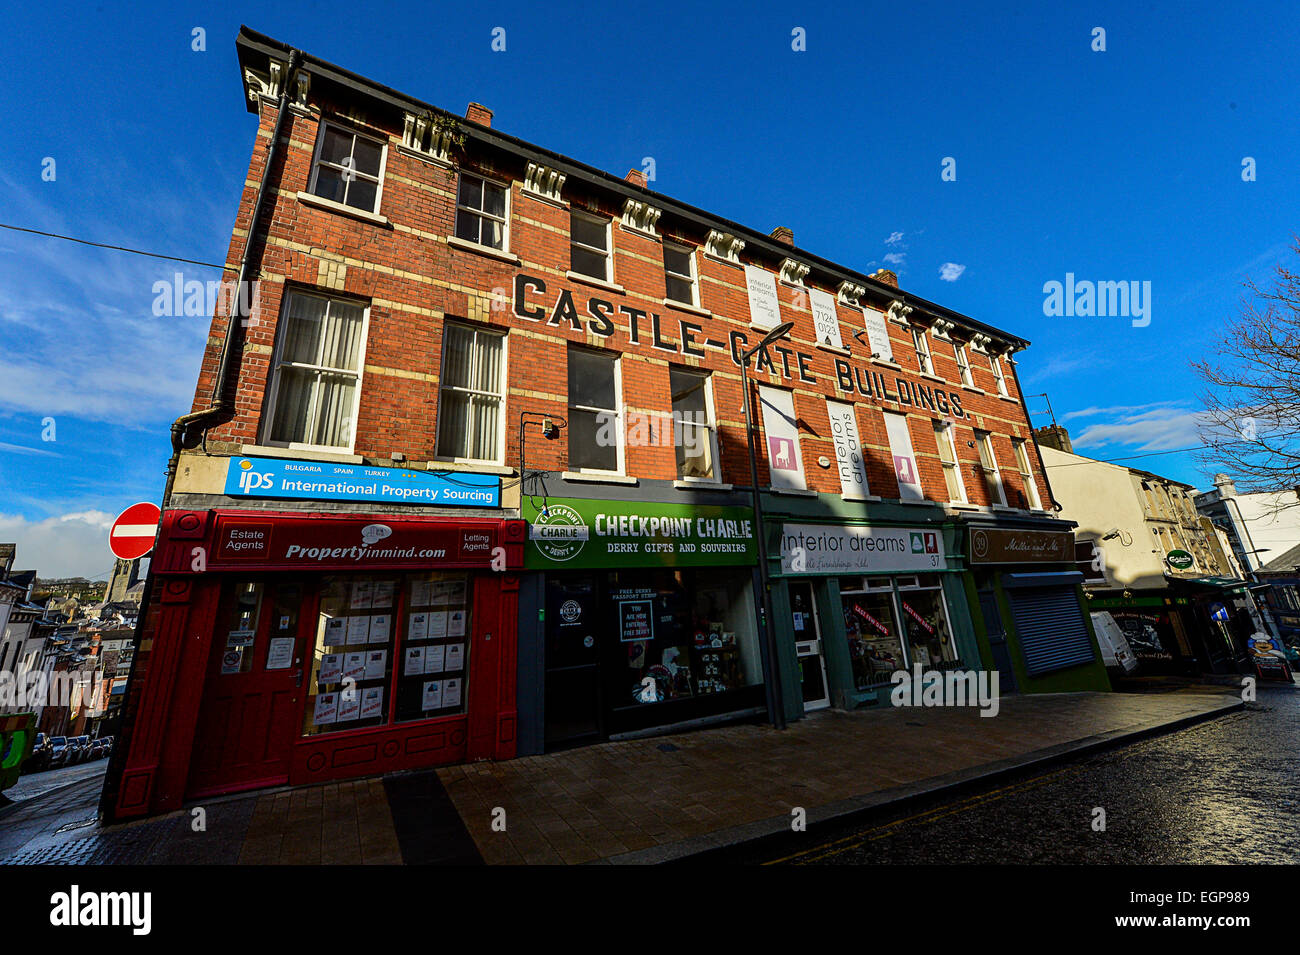 Old Shop Fronts Stock Photos Amp Old Shop Fronts Stock